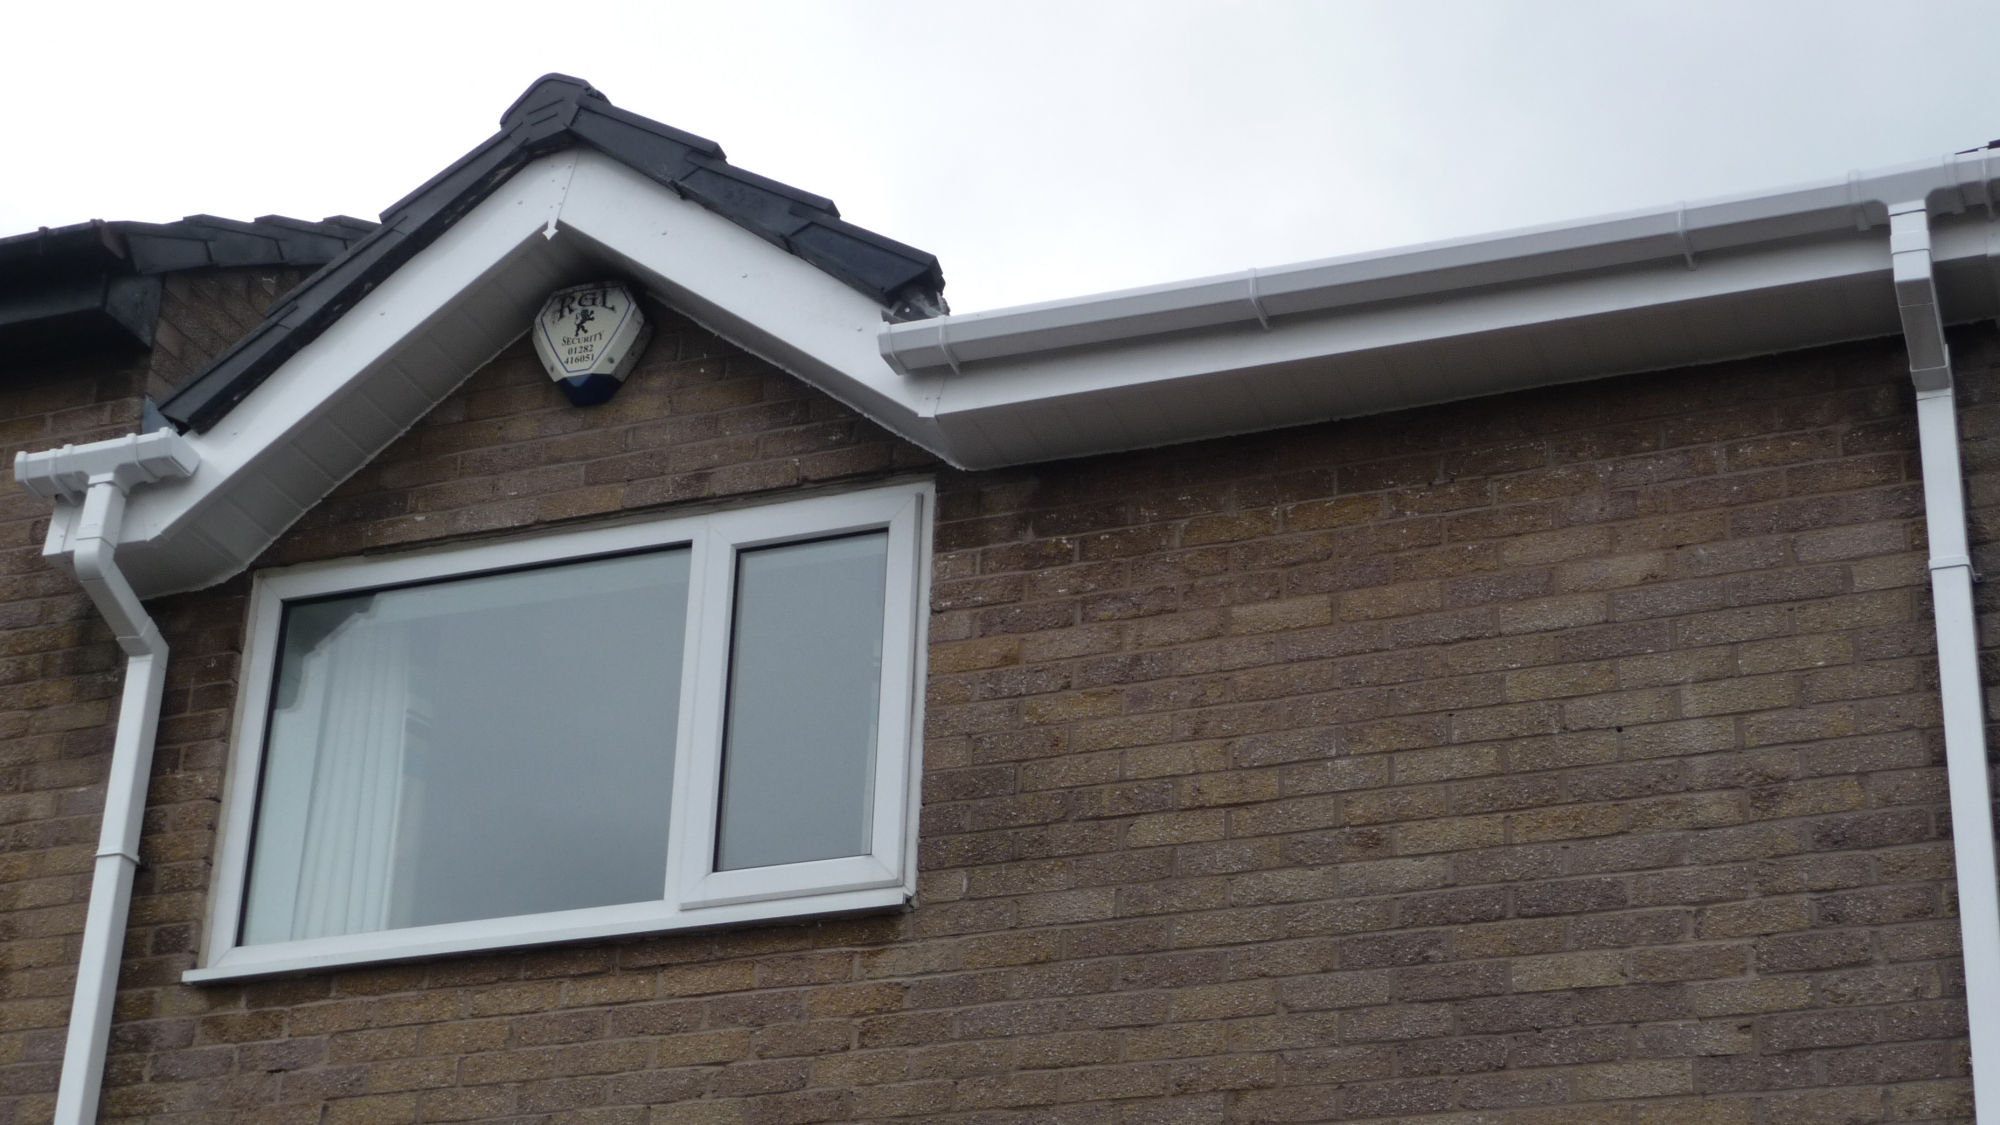 UPVC guttering, downspouts, fascias and soffits